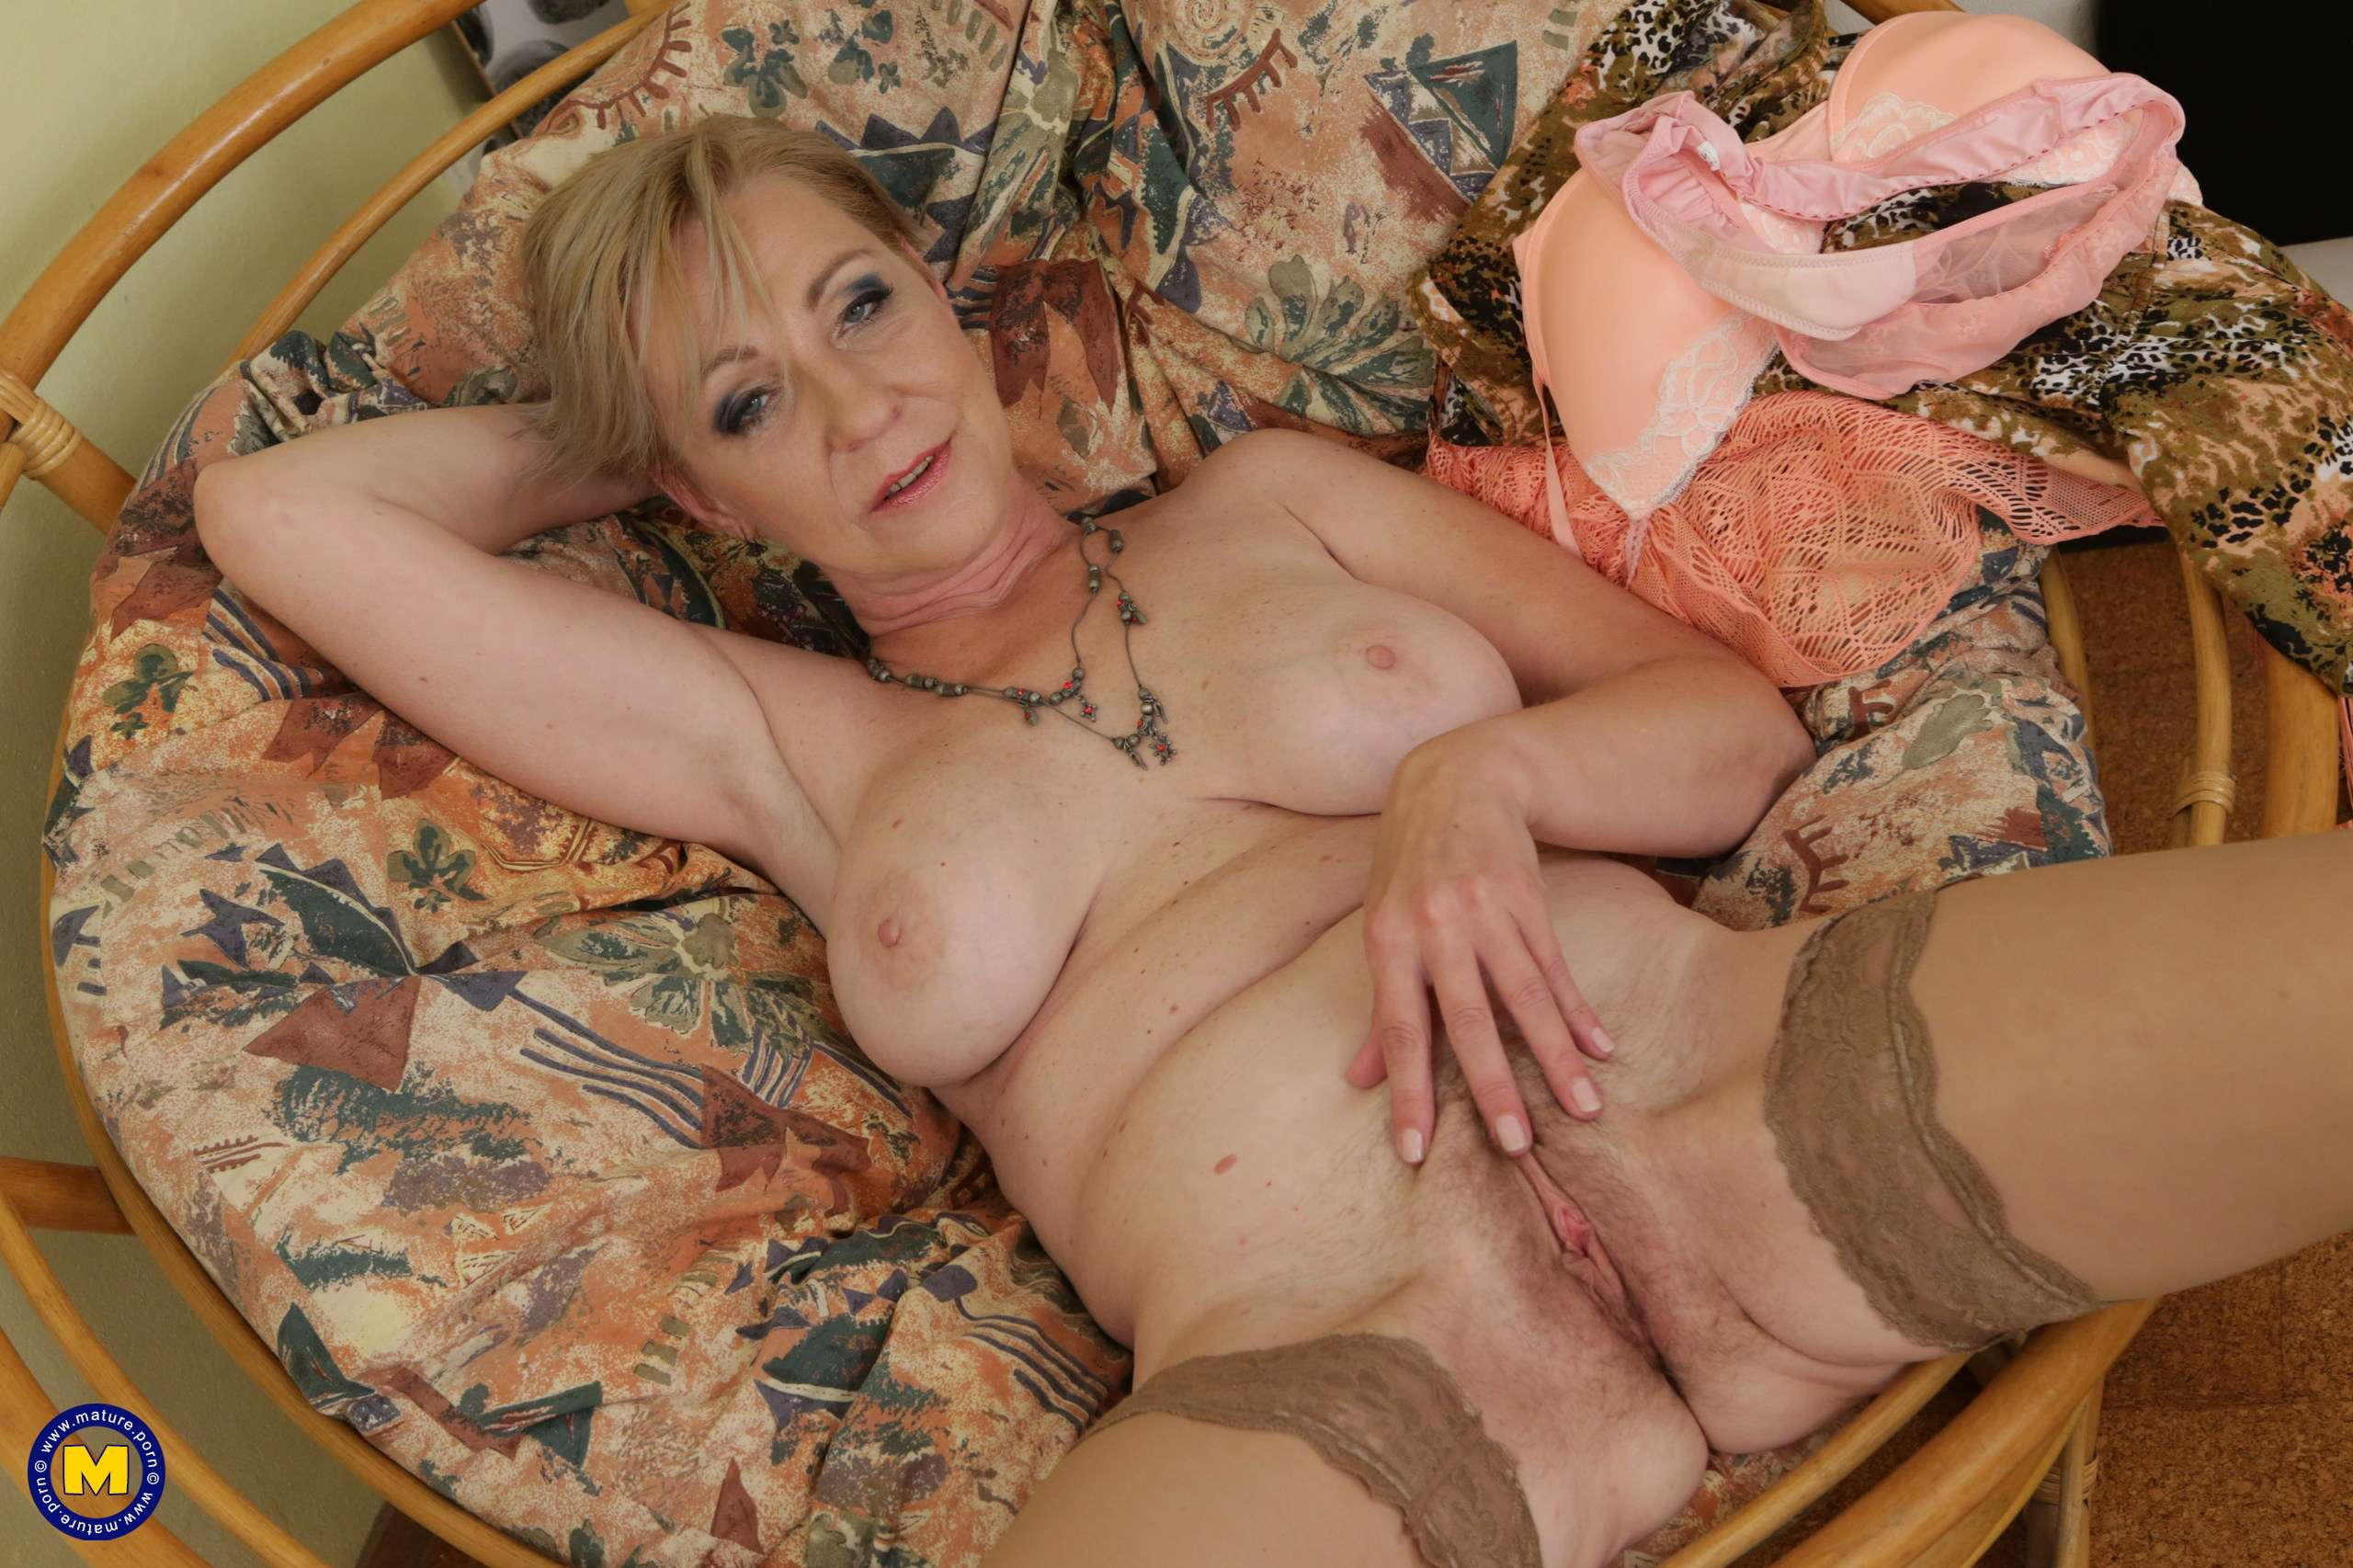 Horny housewife milf gets her hairy pussy creampied and loves it, free porn